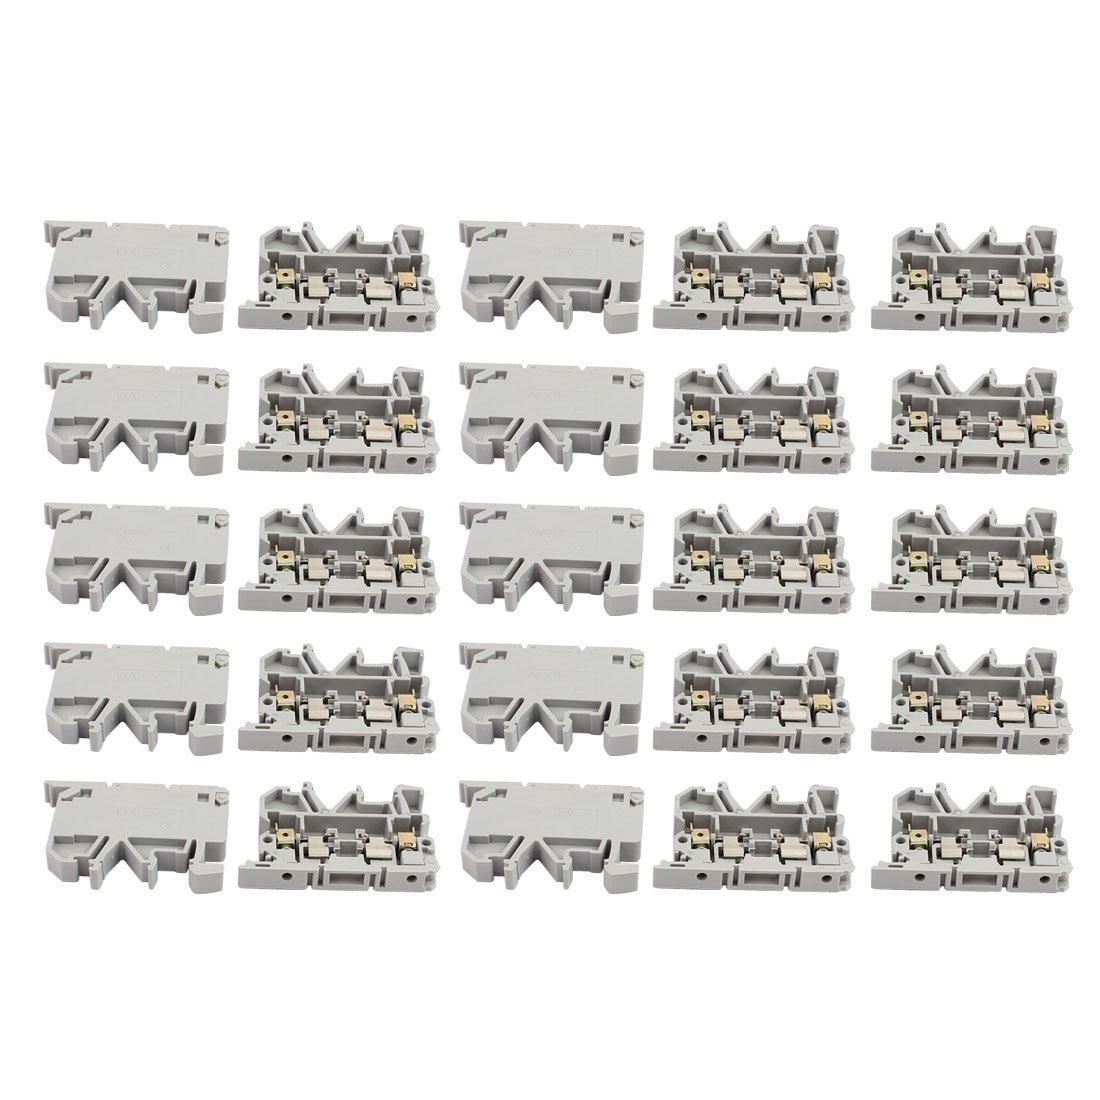 Pack of 50 22 AWG to 12 AWG 5 mm x 20 mm UL Rated 10 Amp at 300V ASI ASIASK1 DIN Rail Fuse Disconnect Terminal Block 8 mm Wide Screw Clamp